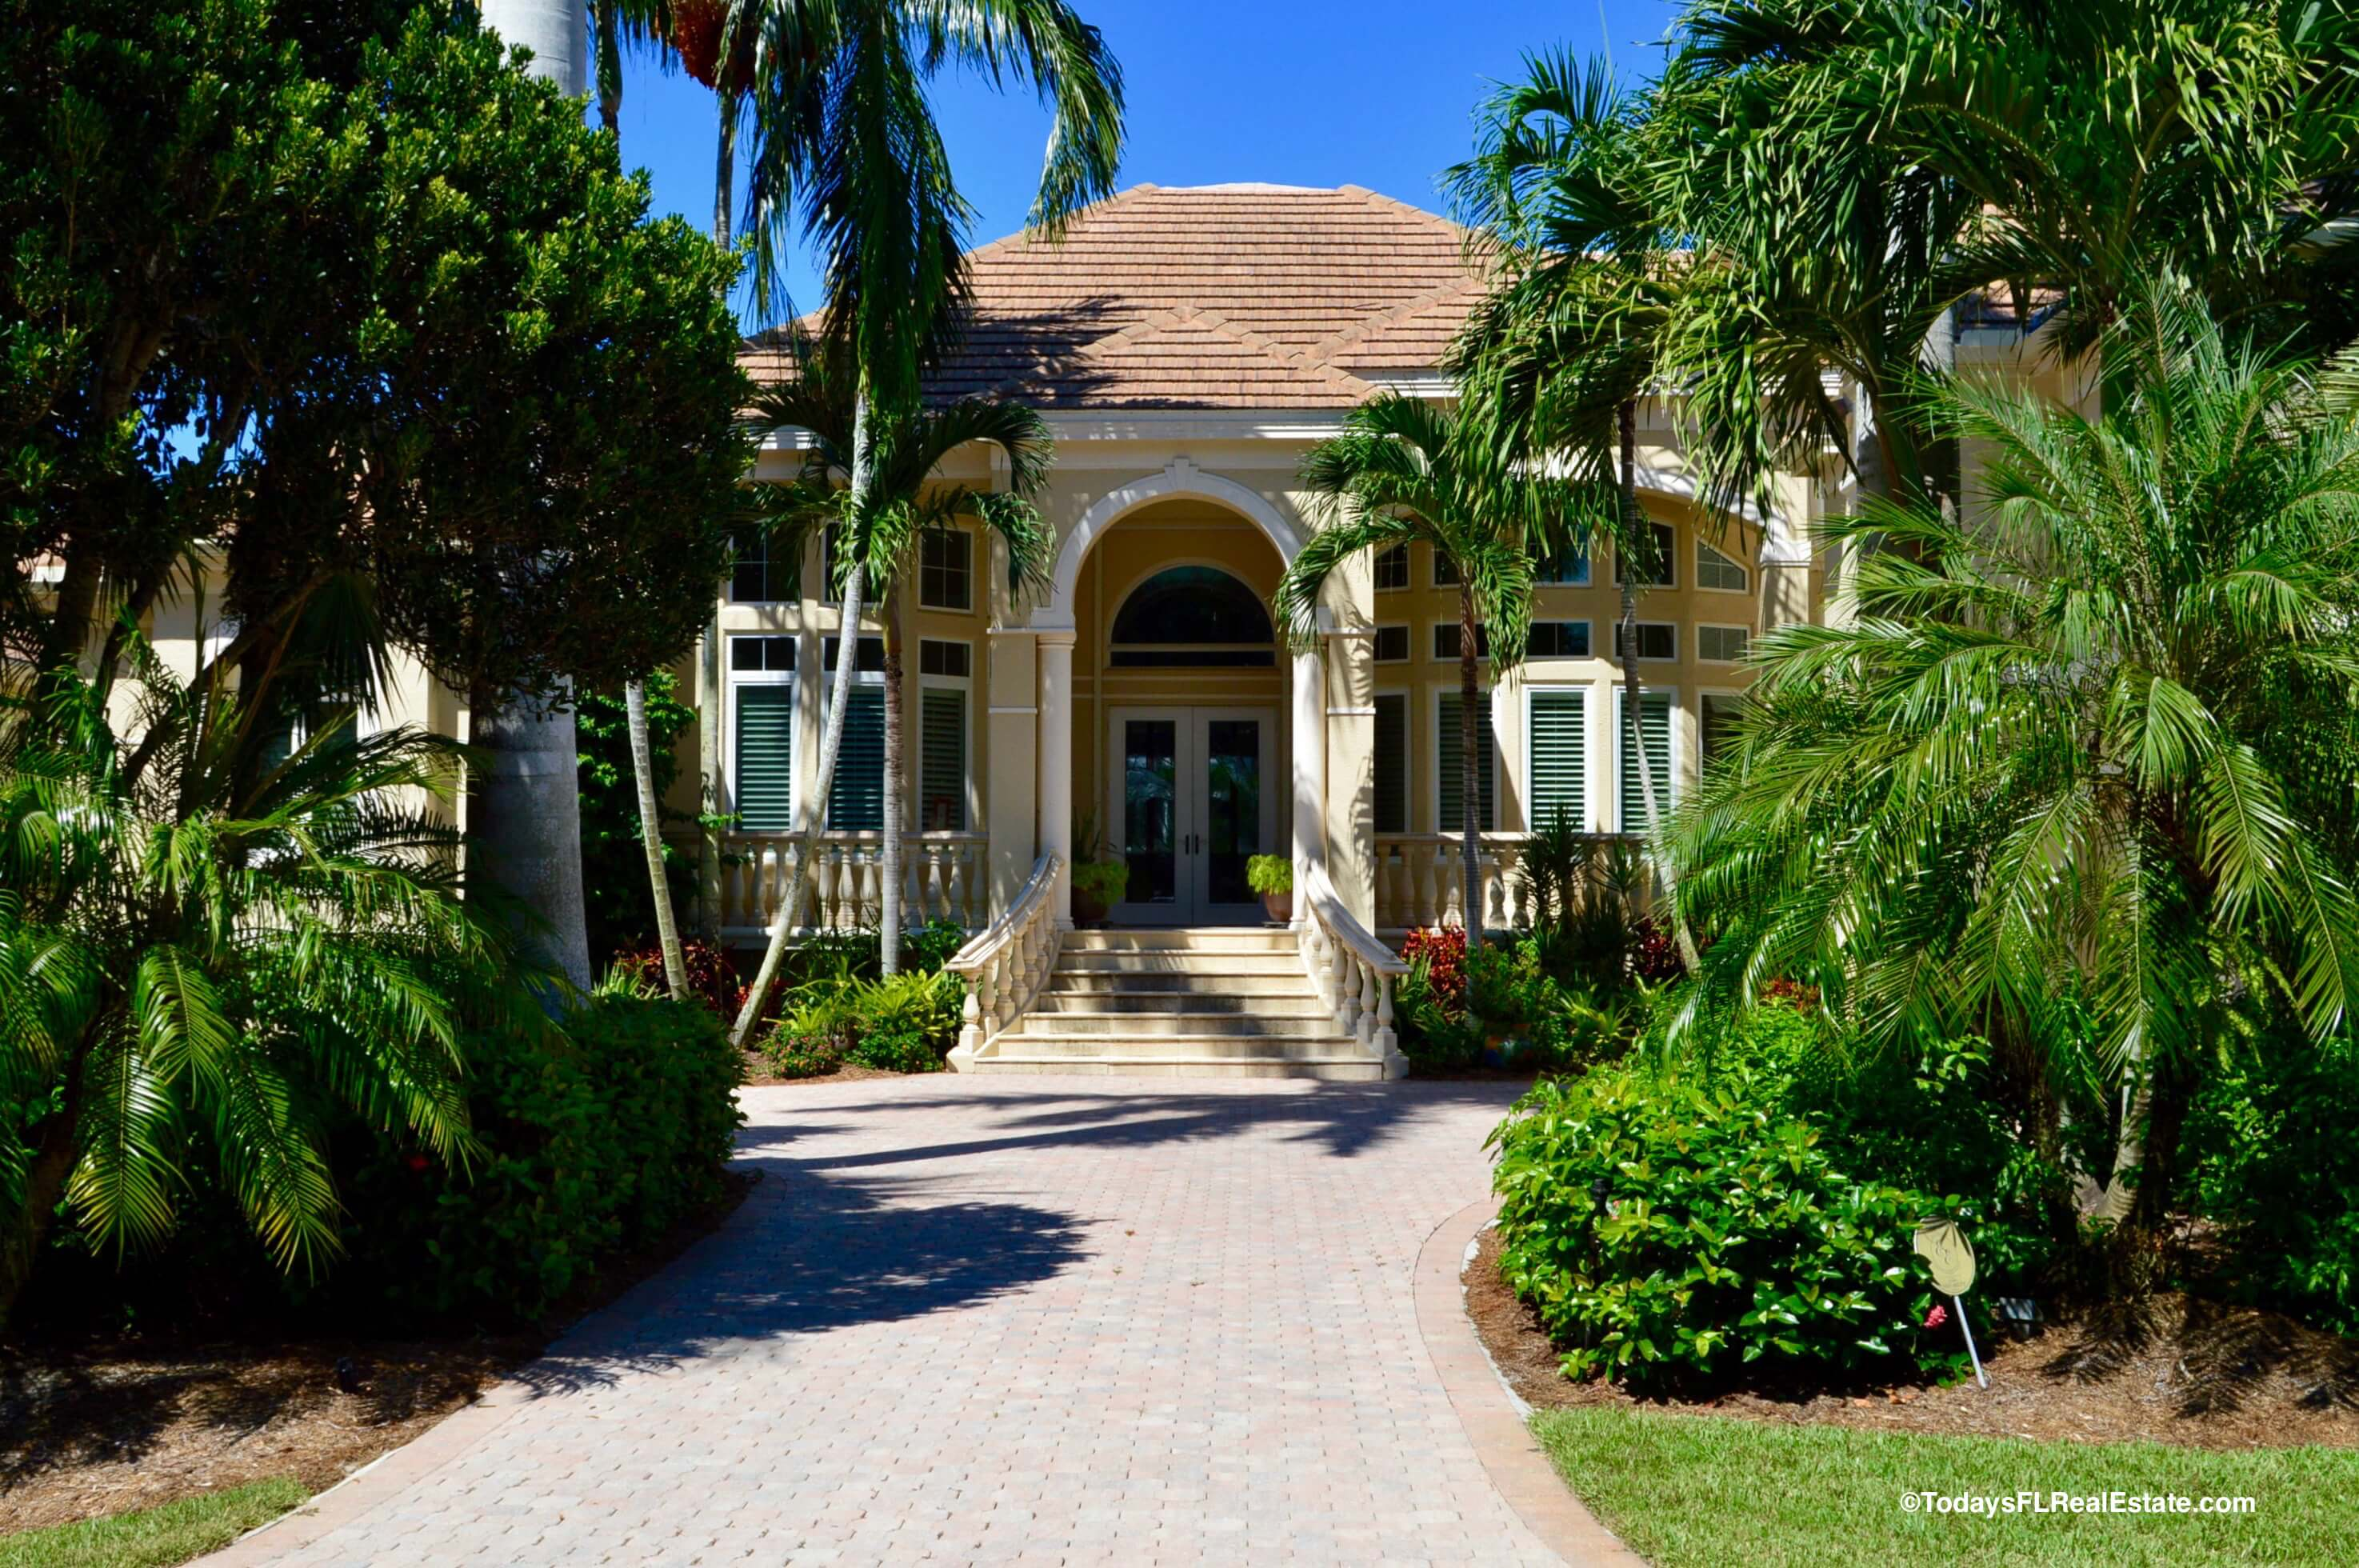 Sanibel Island Homes for Sale, Sanibel Island Homes, Southwest Florida Homes, Florida Homes